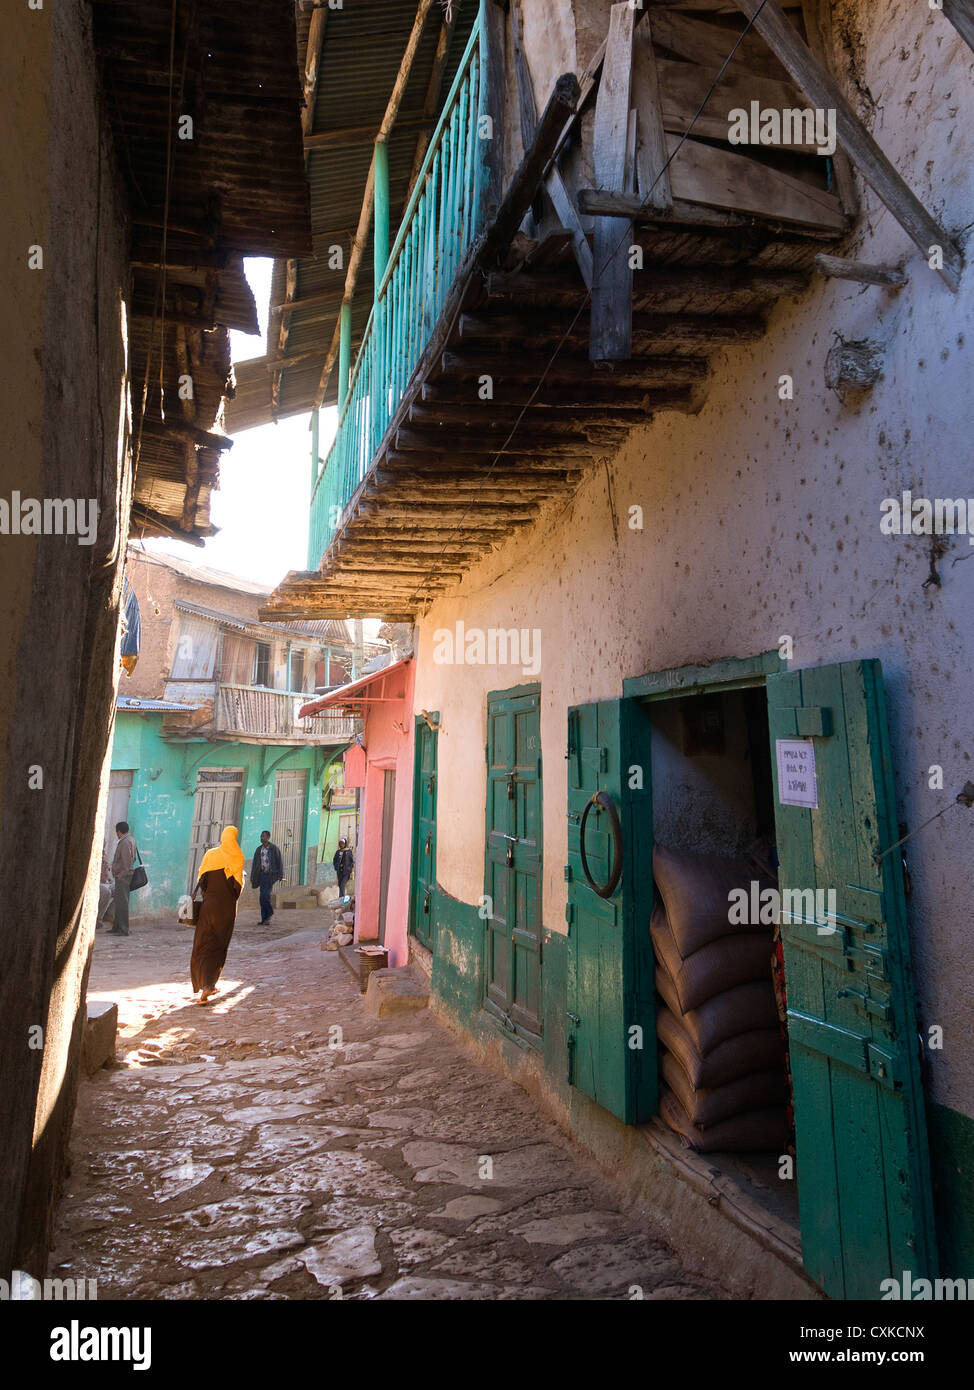 Elk200-4155v Ethiopia, Harar, old town, house with balcony - Stock Image